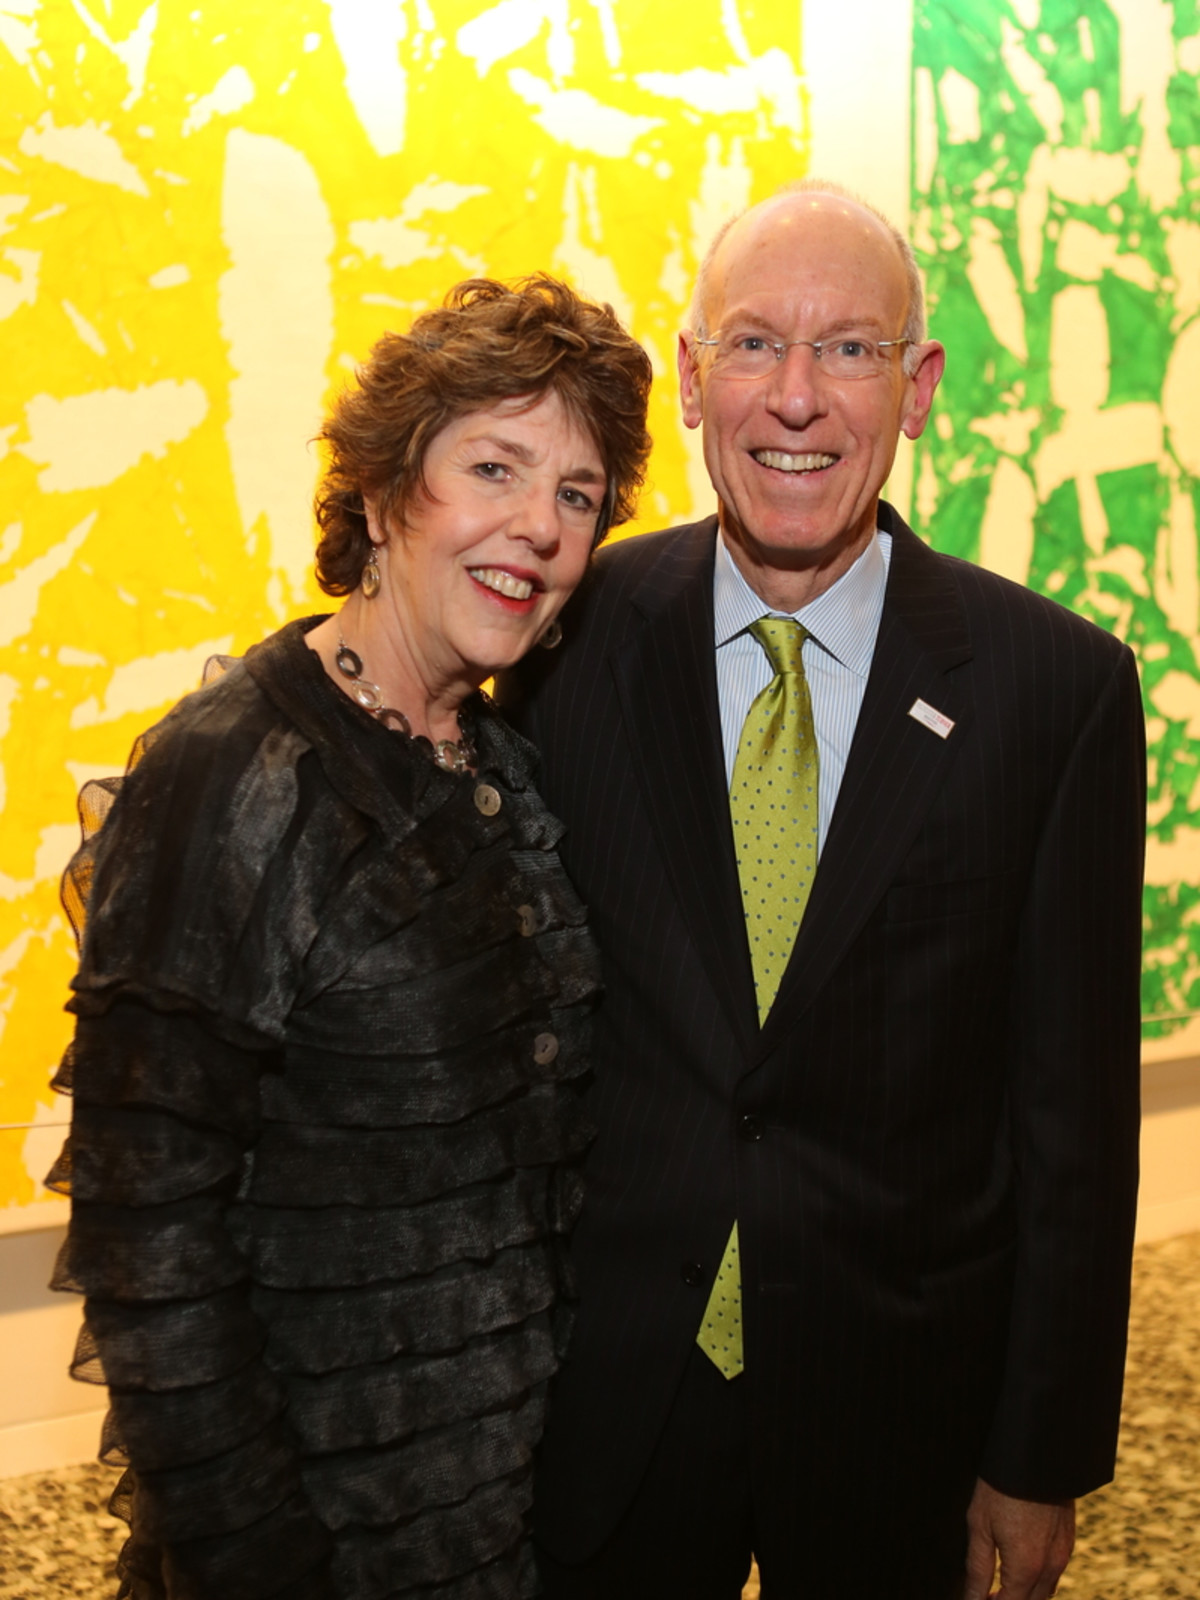 News, Mayor Sylvester Turner Inauguration, Jan. 2016, MFAH, Lainie Gordon, David Mincberg